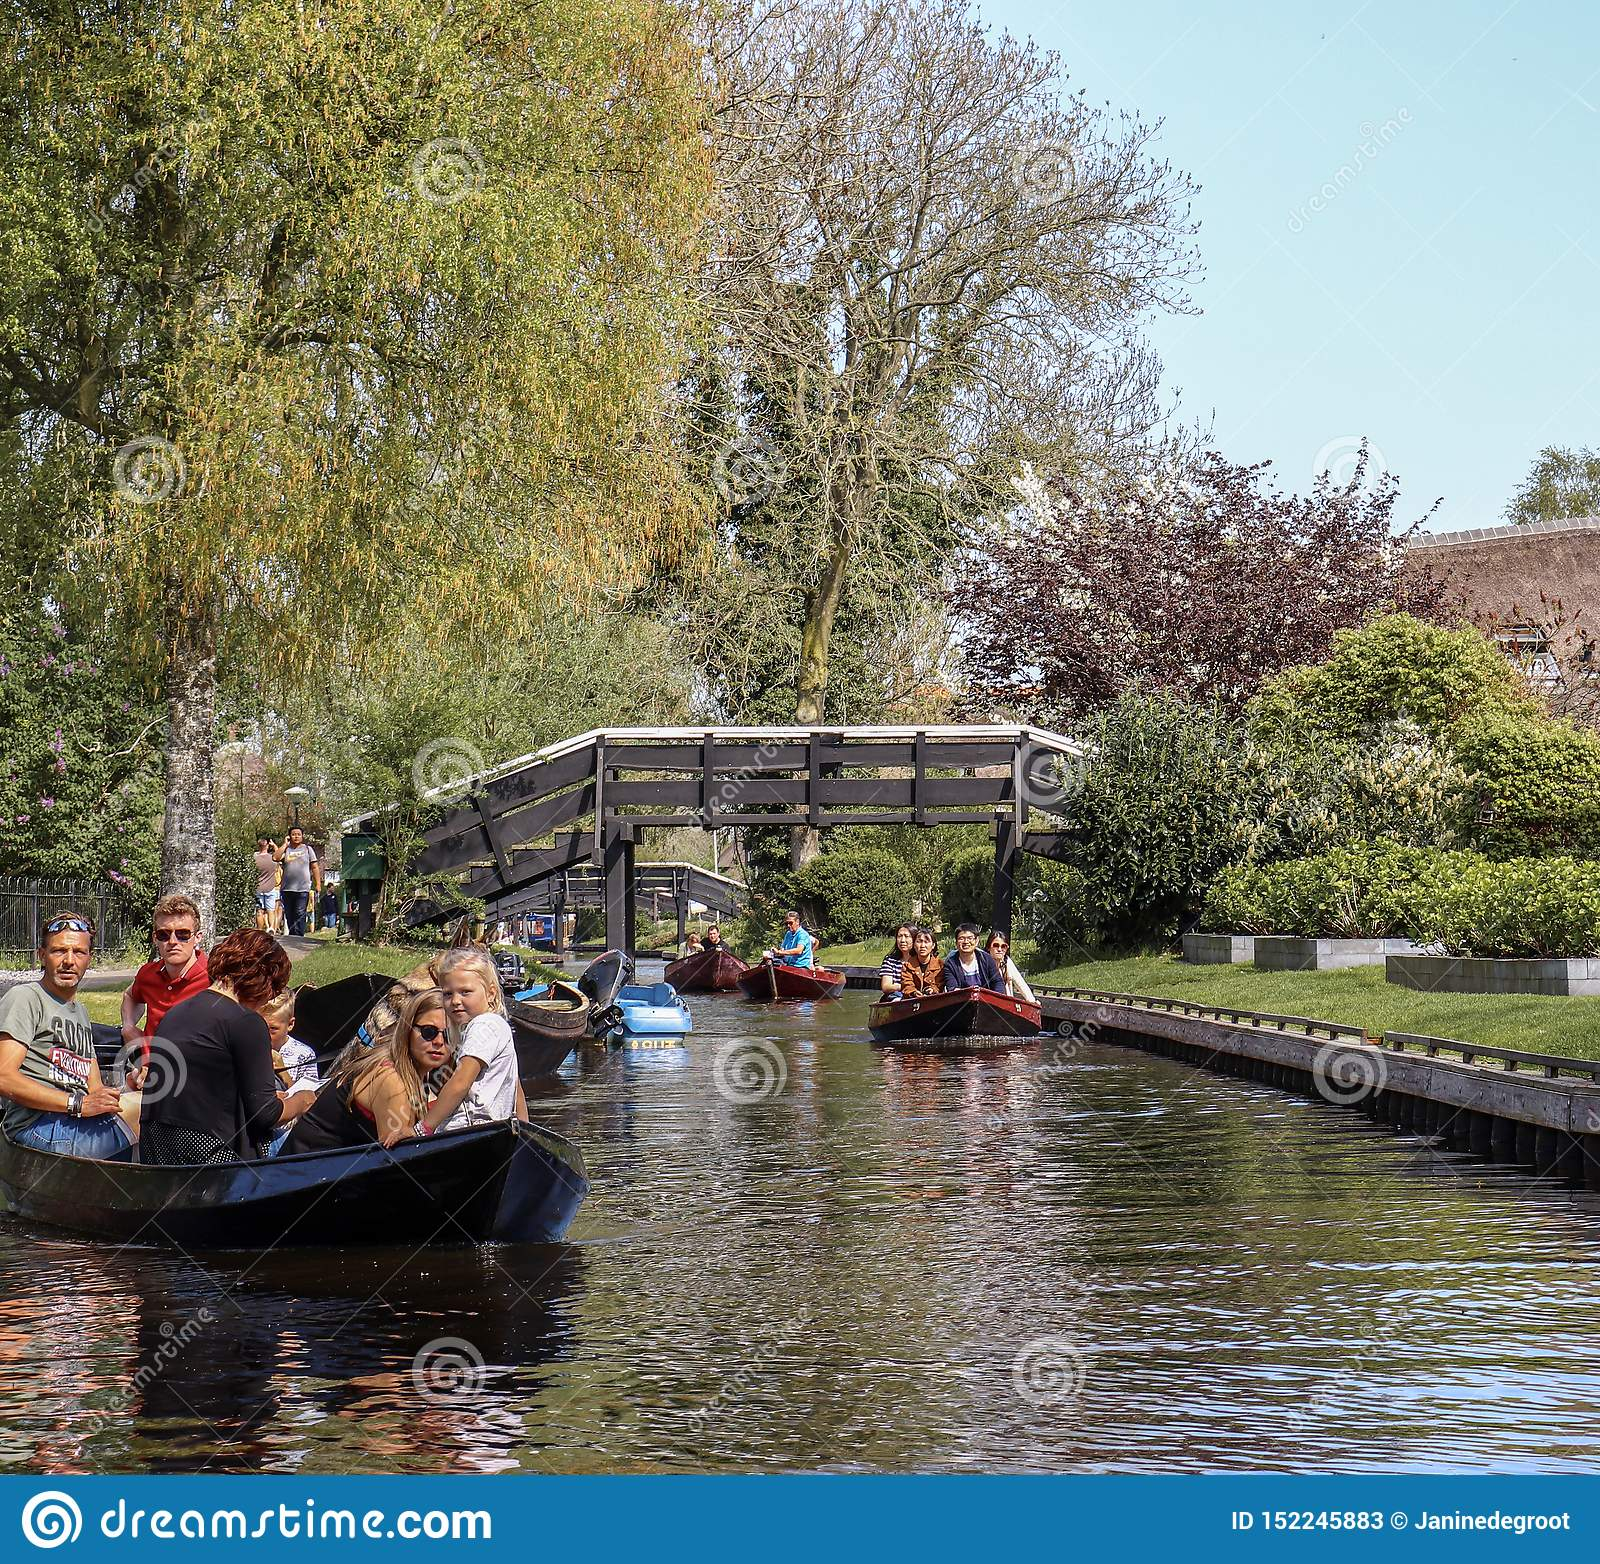 Giethoorn, Nederland - April 22, 2019